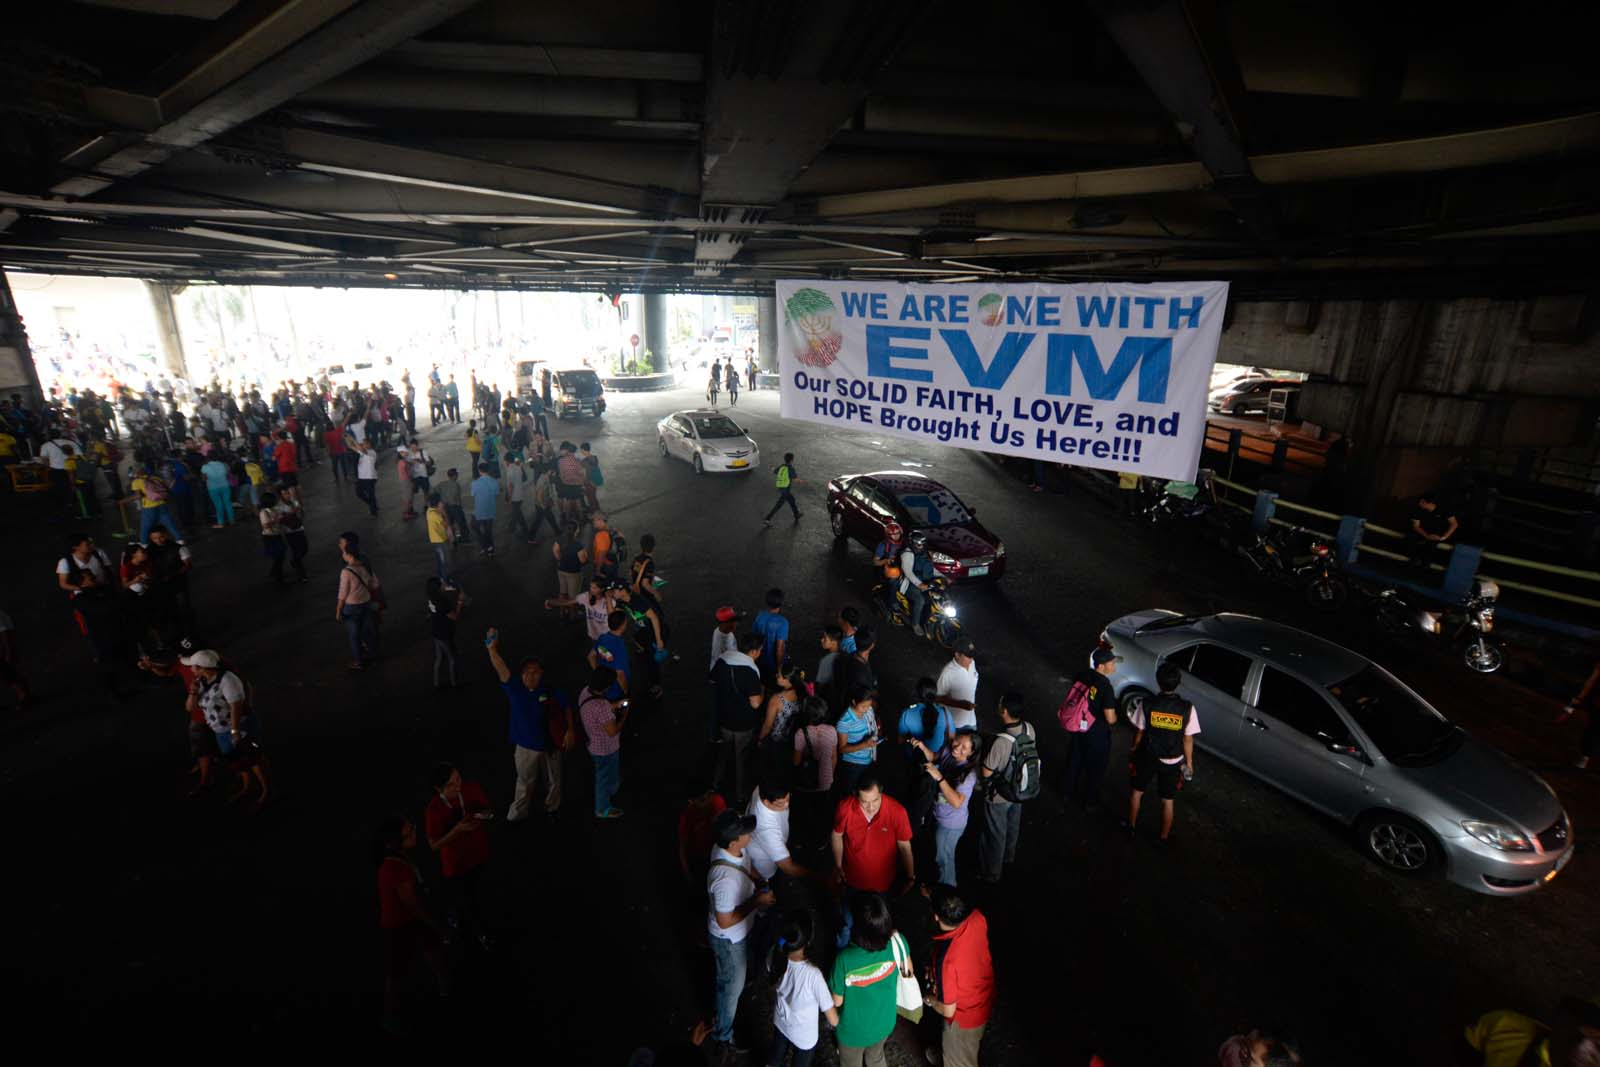 GOING HOME. Iglesia ni Cristo members leave their protest site on August 31, 2015, after church leaders reached an 'understanding' with the government. Photo by Alecs Ongcal/Rappler